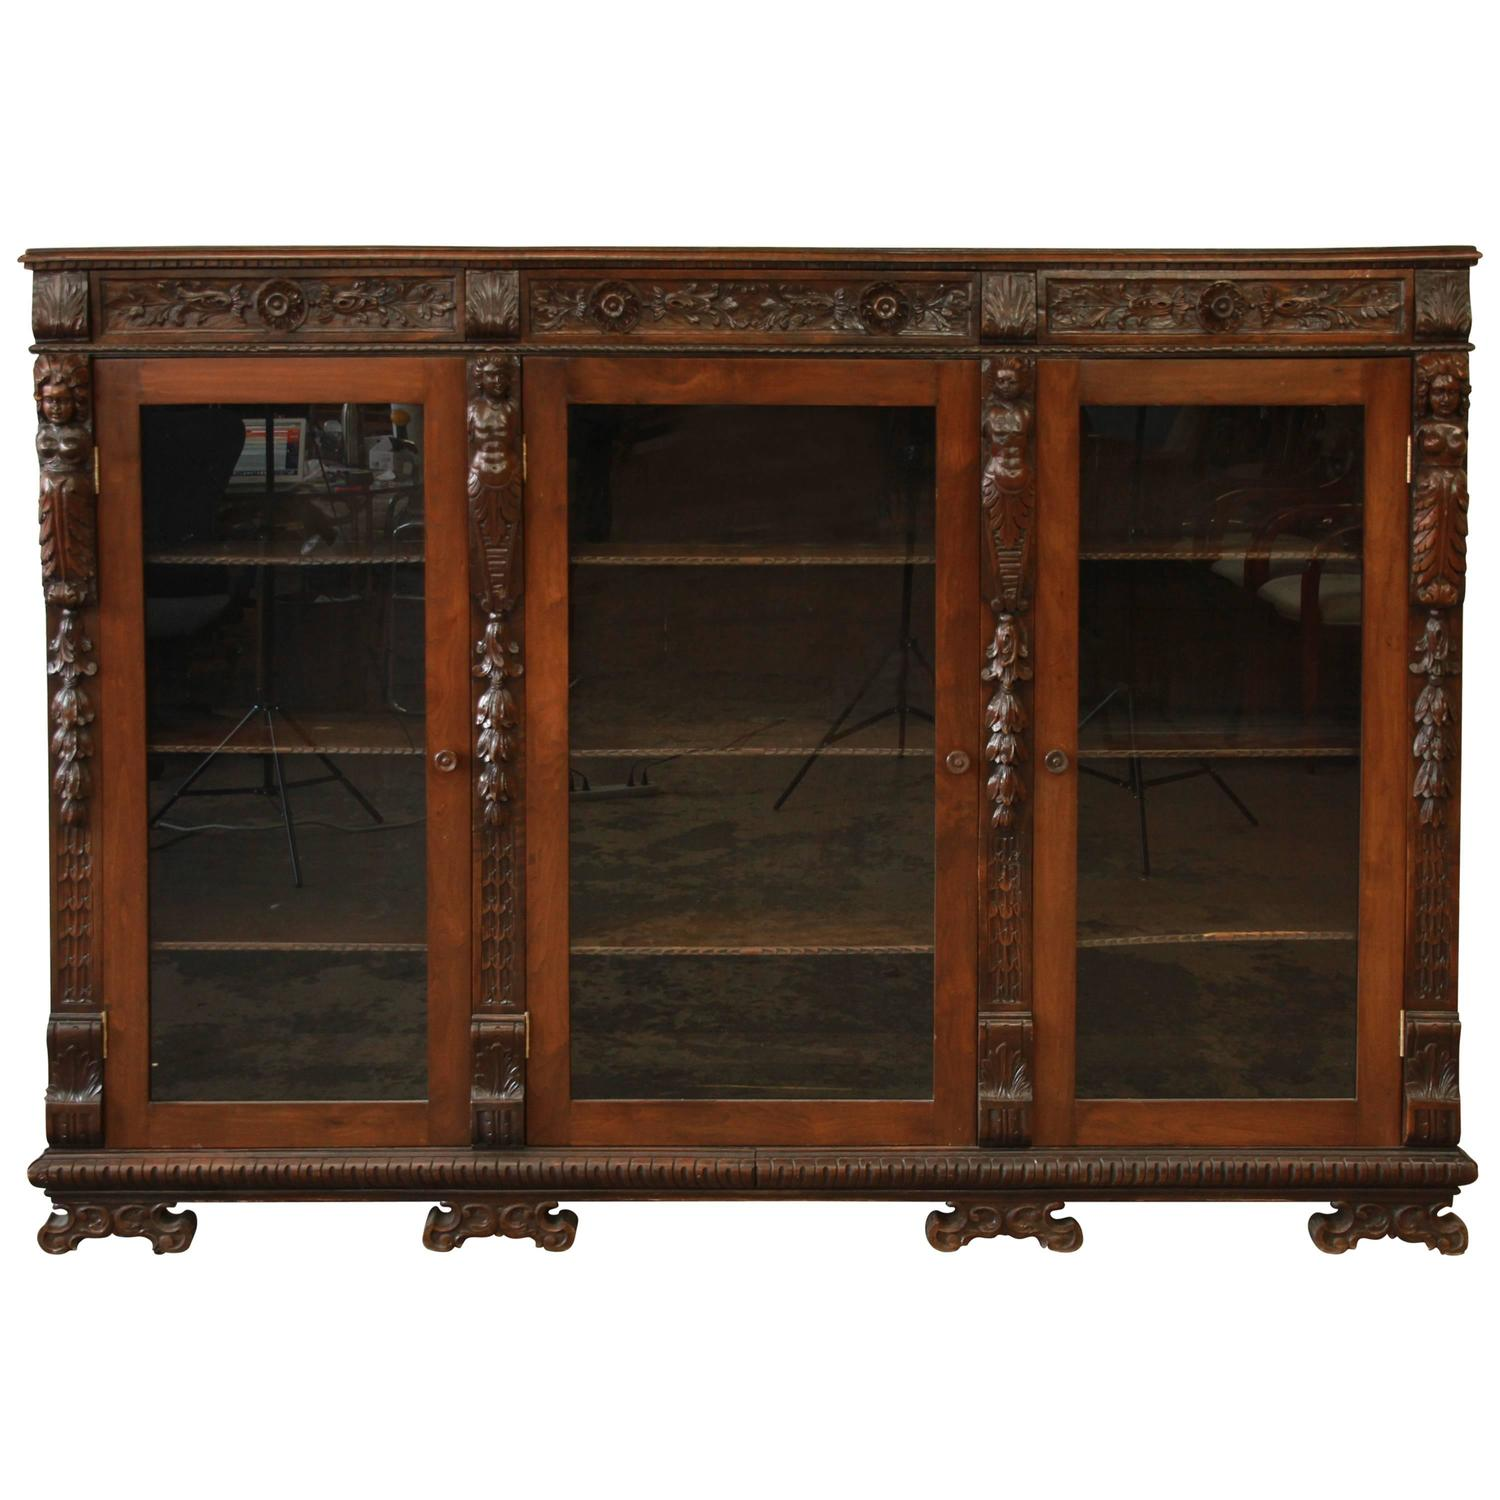 Antique Ornate Carved French Victorian Triple Bookcase - Antique French Cabinet Cupboard Dresser Bookcase Oak Carved Gothic